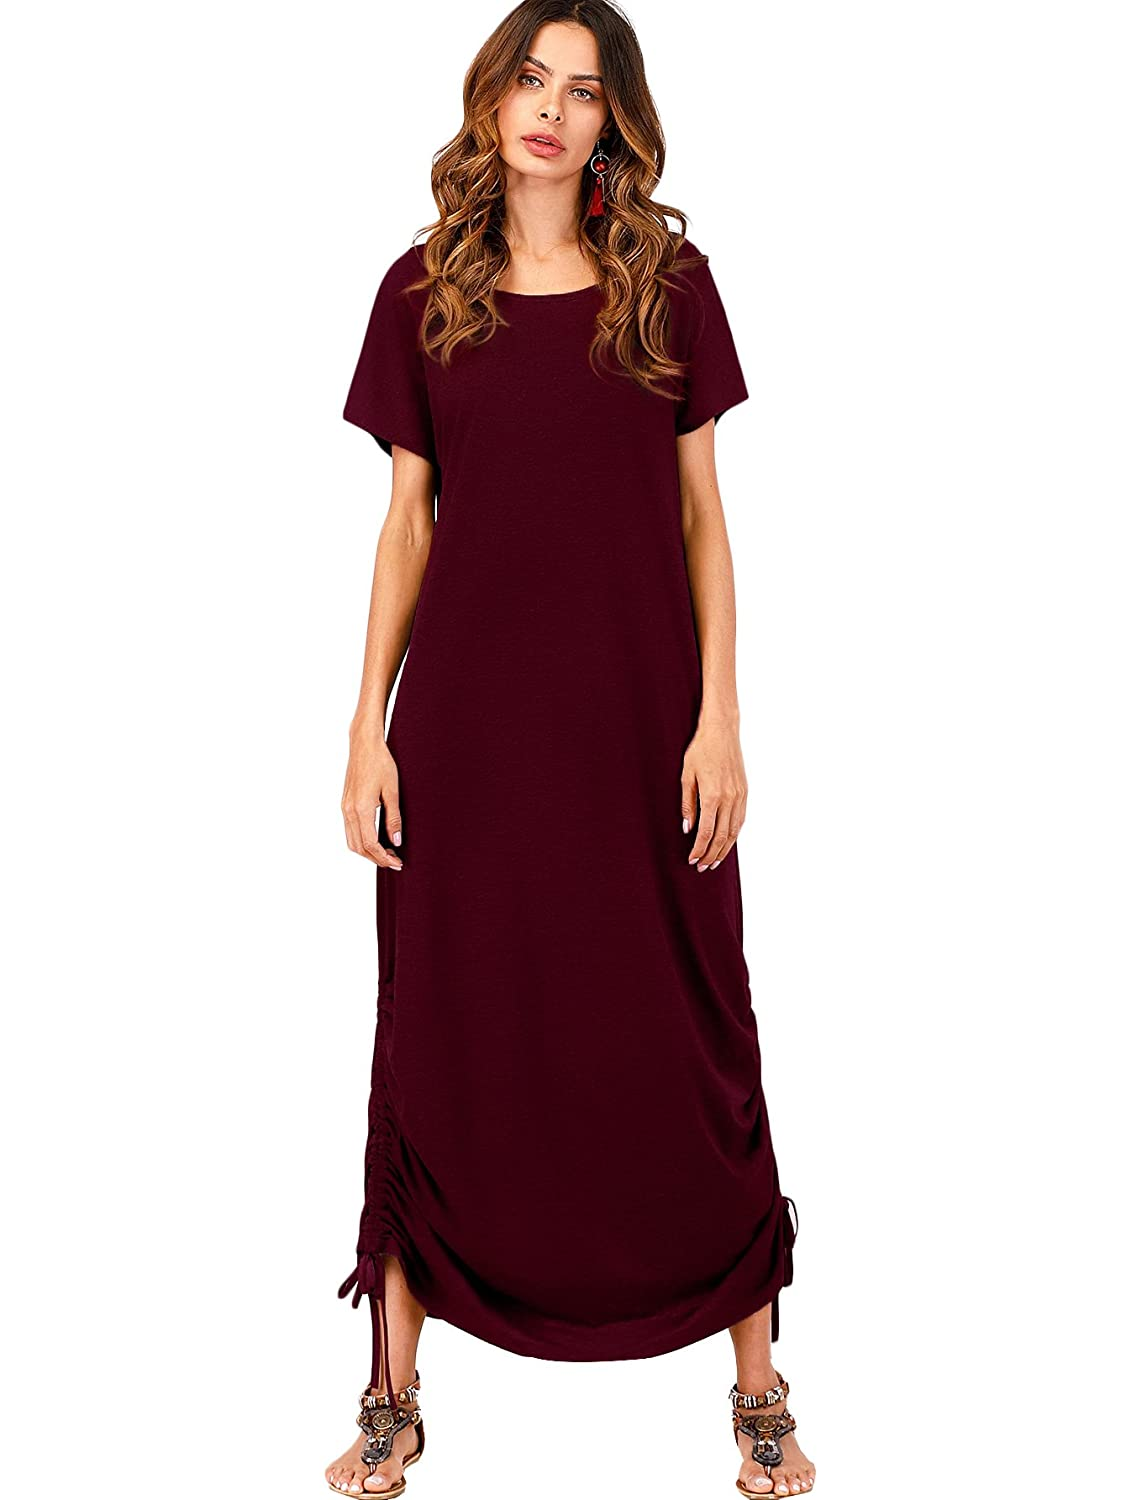 Burgundy Romwe Women's Drawstring Side Short Sleeve Loose Maxi Tunic Casual Long Dresses